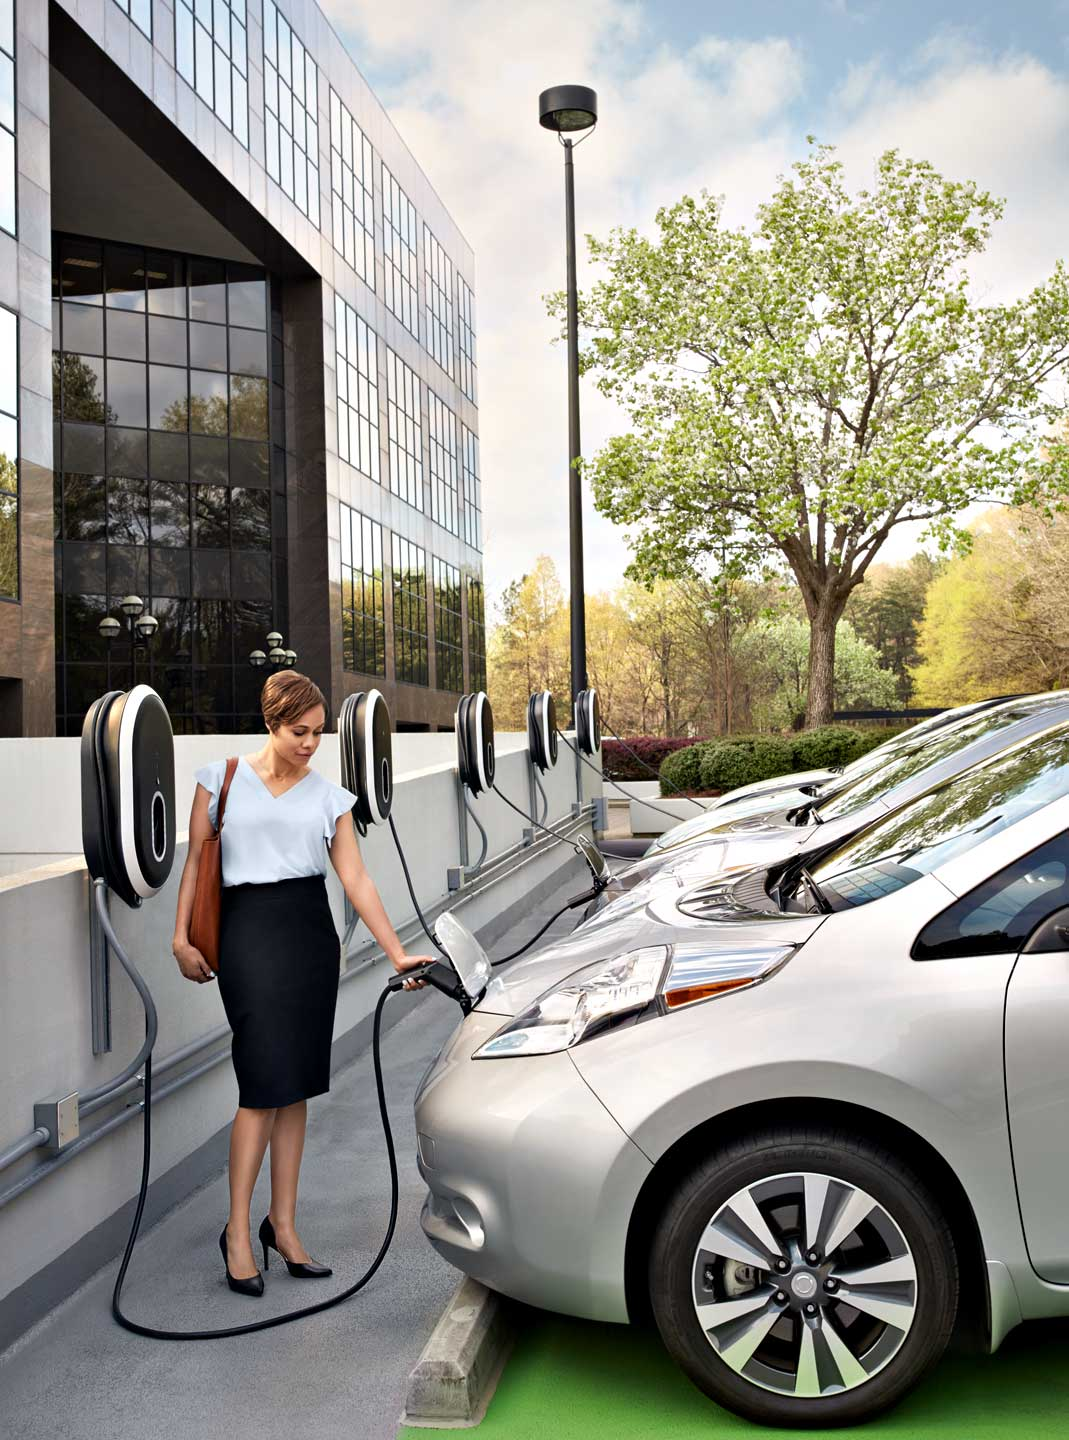 Woman charges electric car at office park, Atlanta. Photographer Nick Burchell